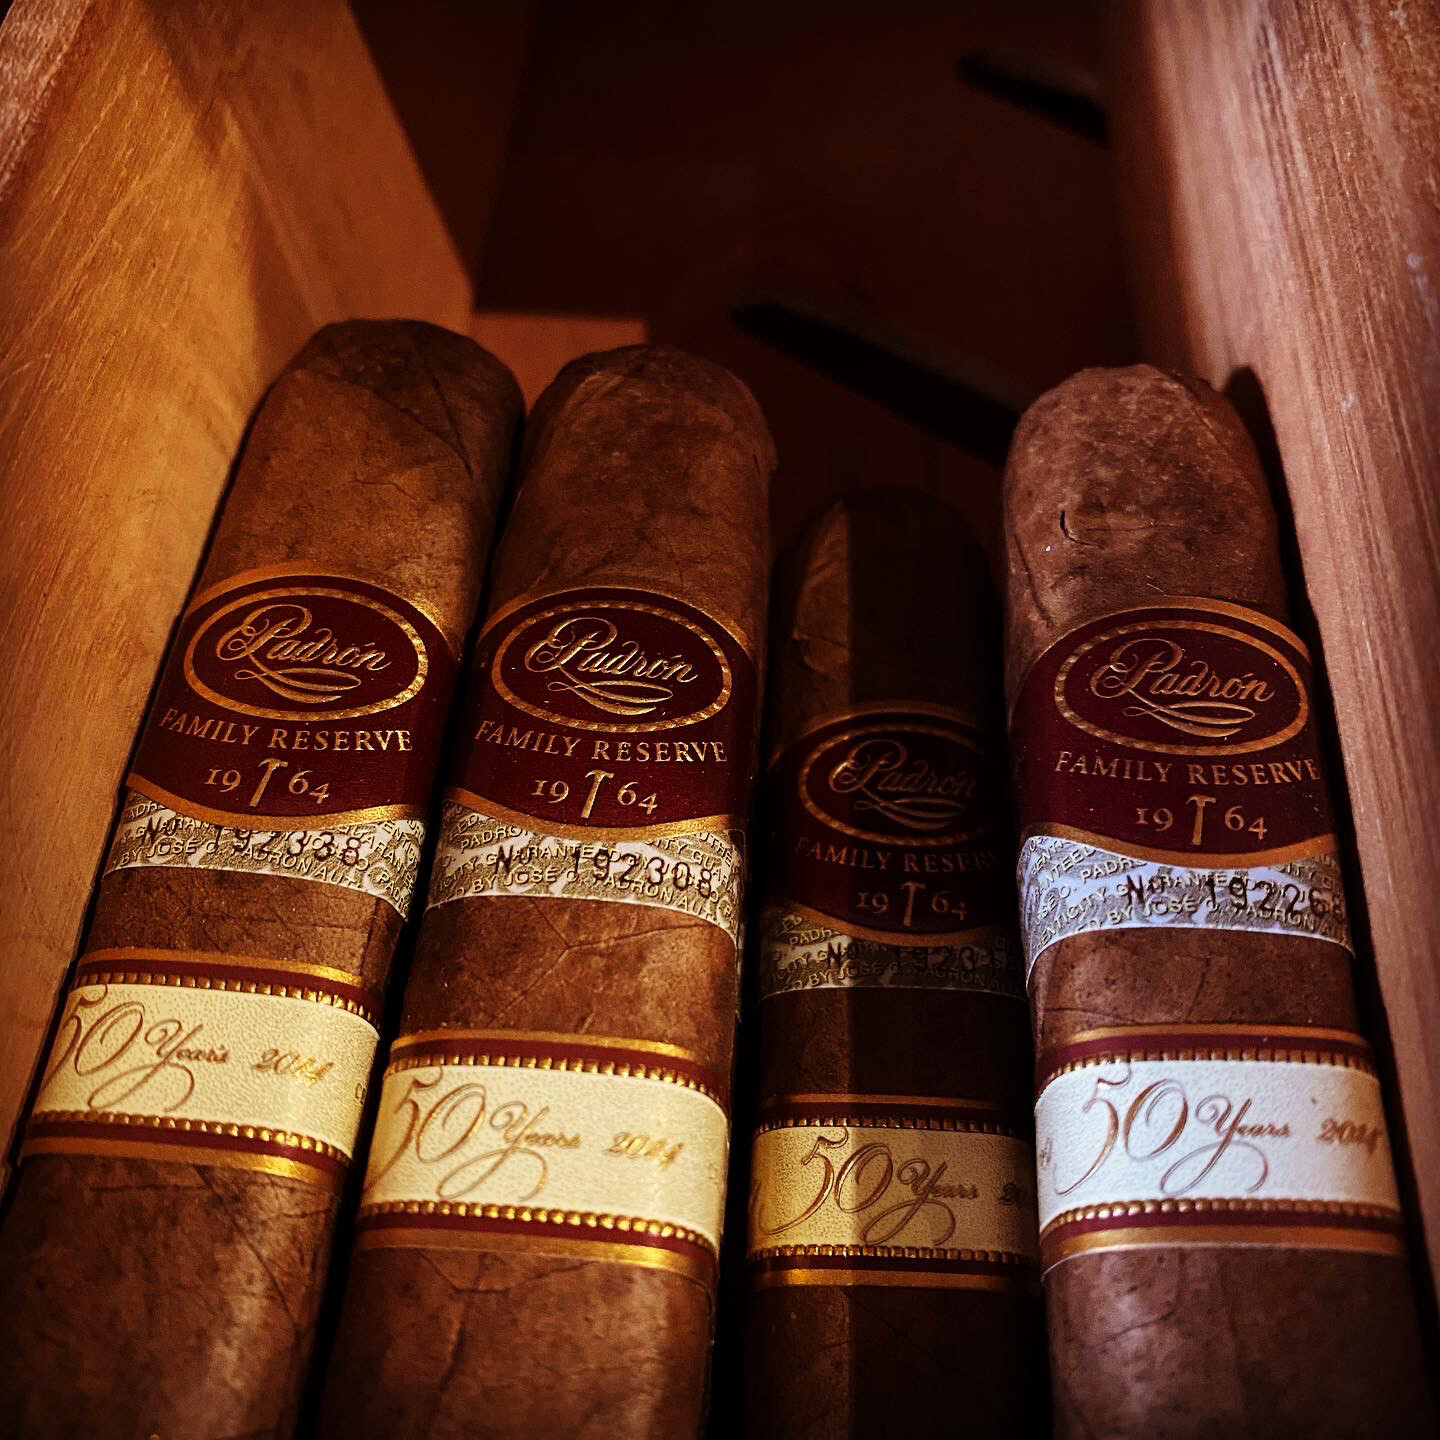 Padron Family Reserve 1964 50 Years Natural, 5x54, 10's